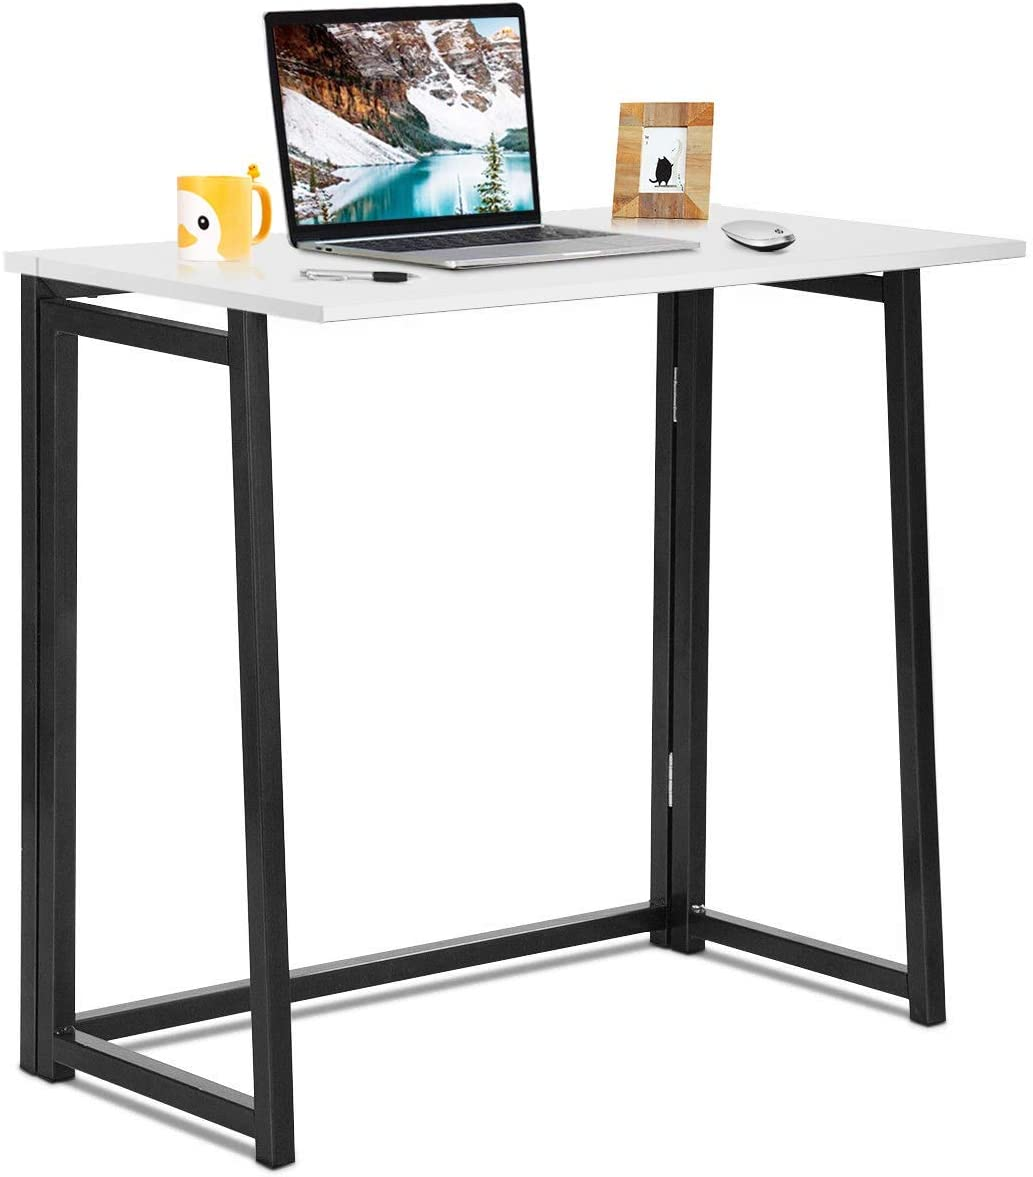 Tangkula Folding Table, Small Foldable Computer Desk, Home Office Laptop Table Writing Desk, Compact Study Reading Table for Small Space, Space Saving Office Table (White)